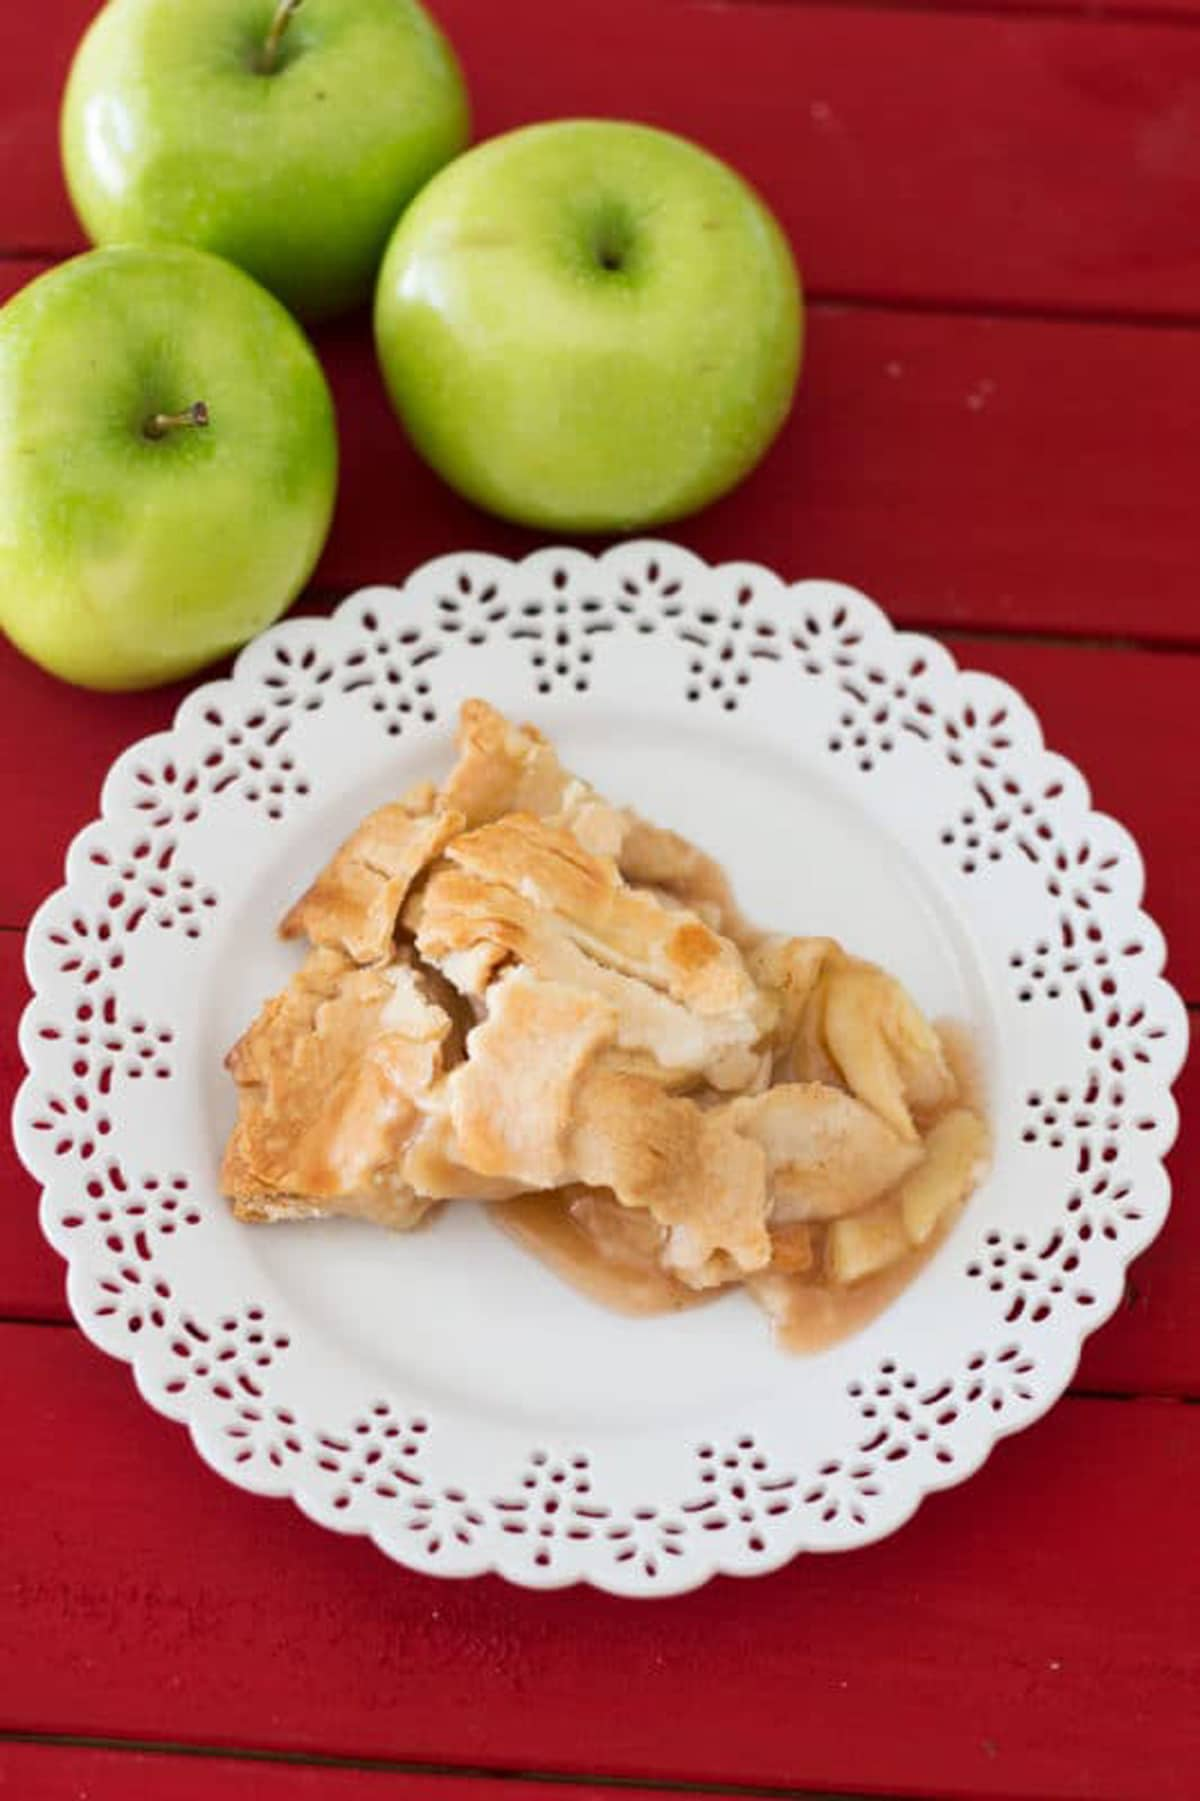 White lace place containing a piece of homemade apple pie sitting on a red table, 3 granny smith apples on table.